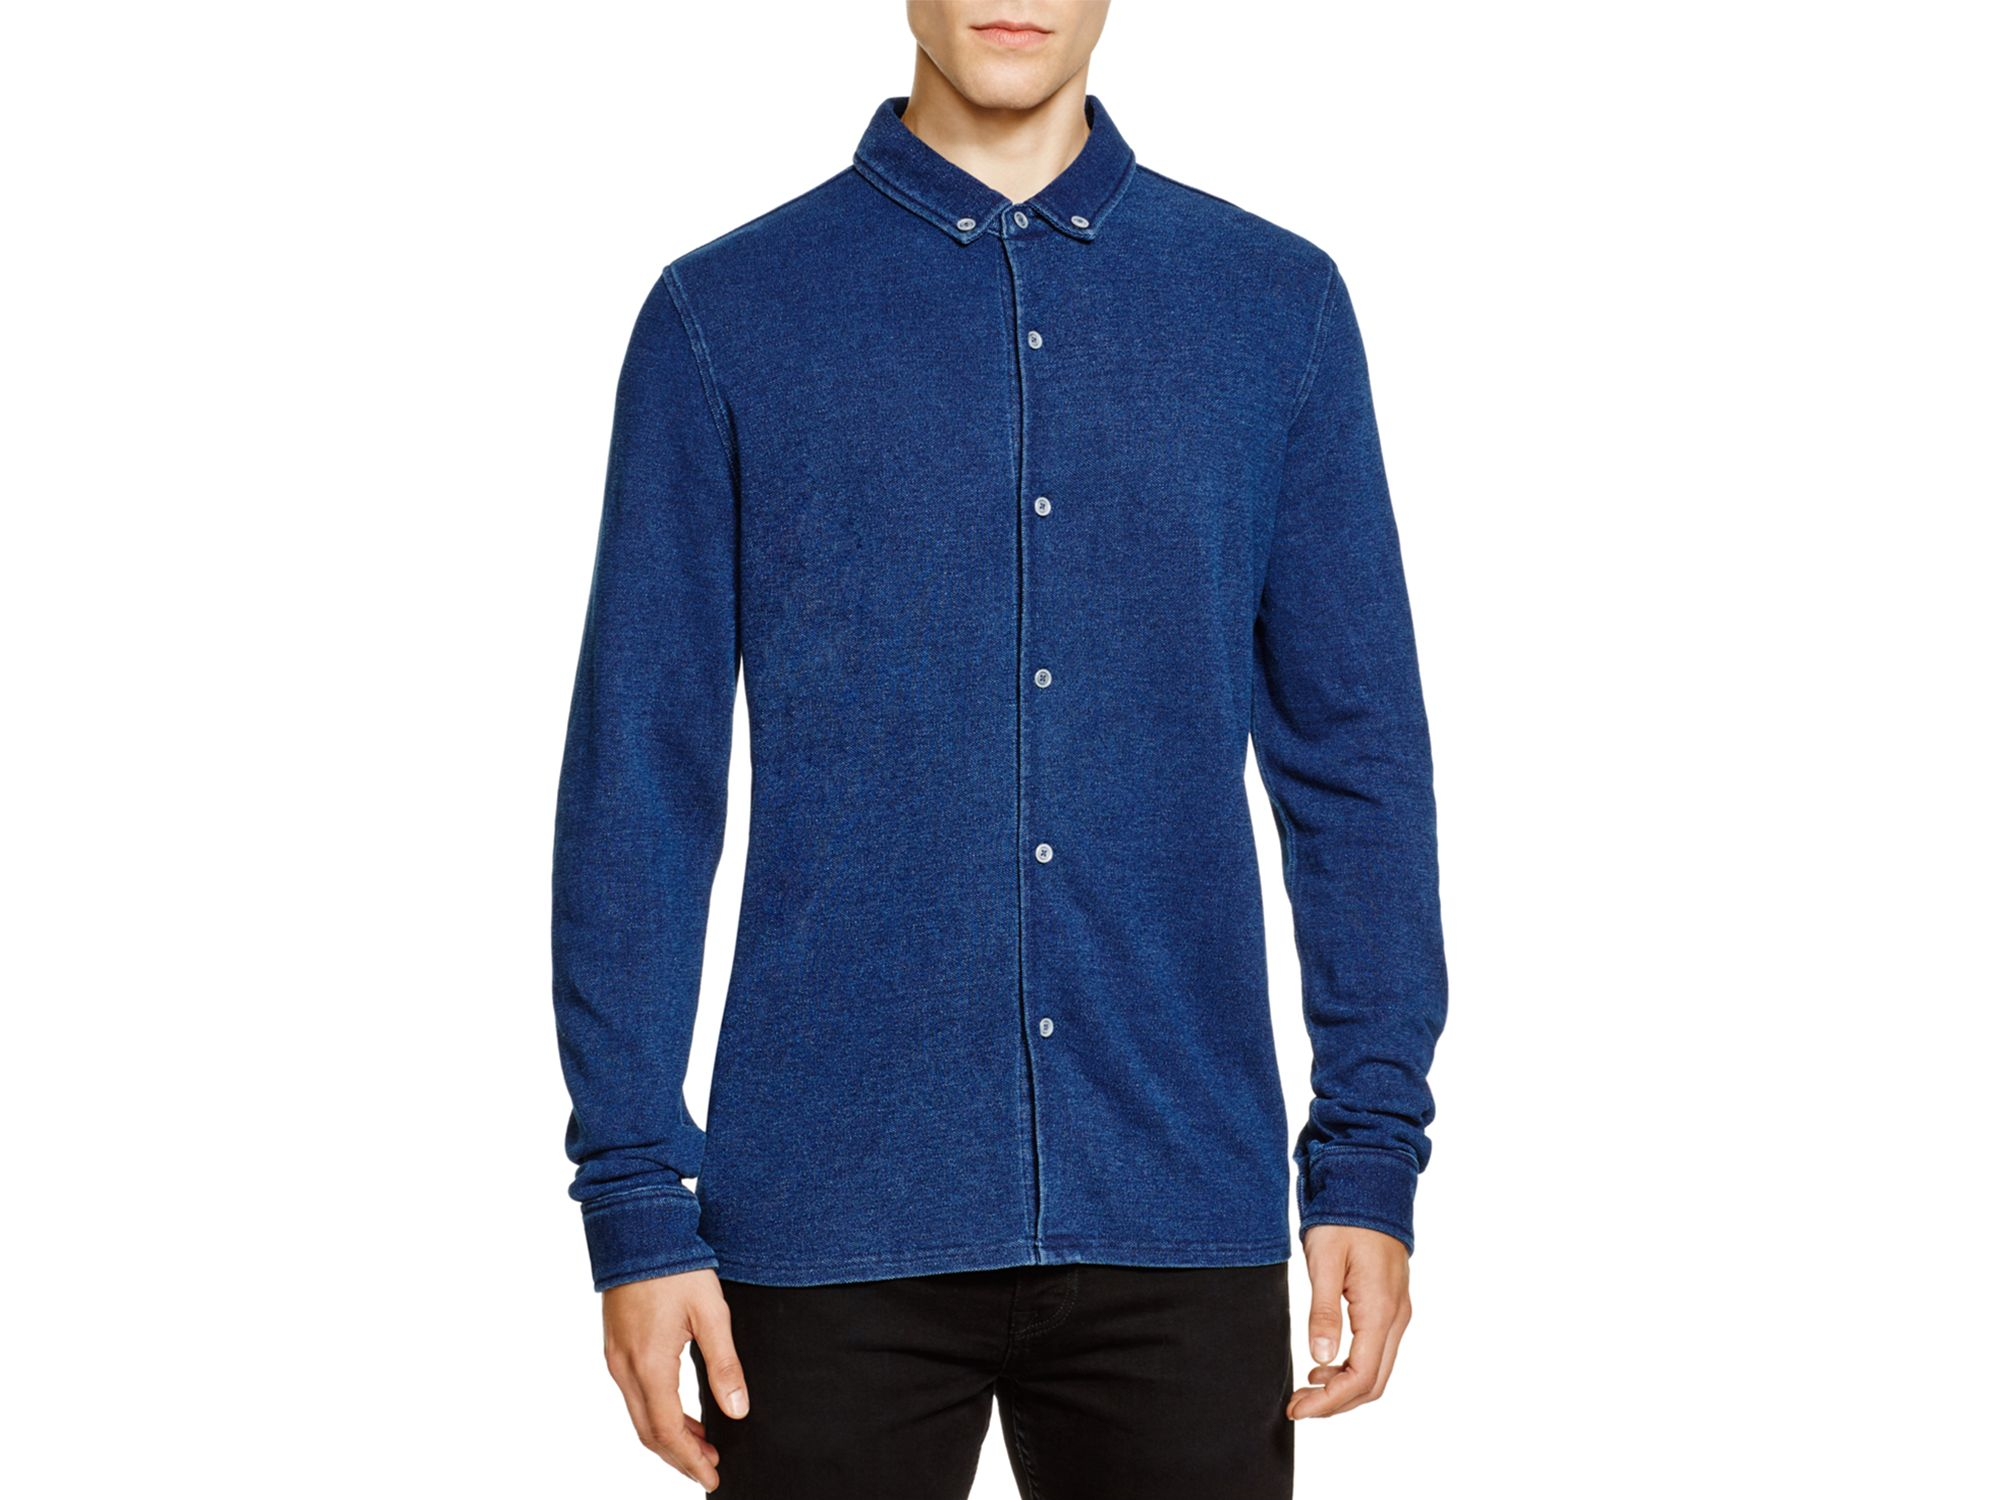 Native youth pique knit slim fit button down shirt in blue for Athletic fit button down shirts